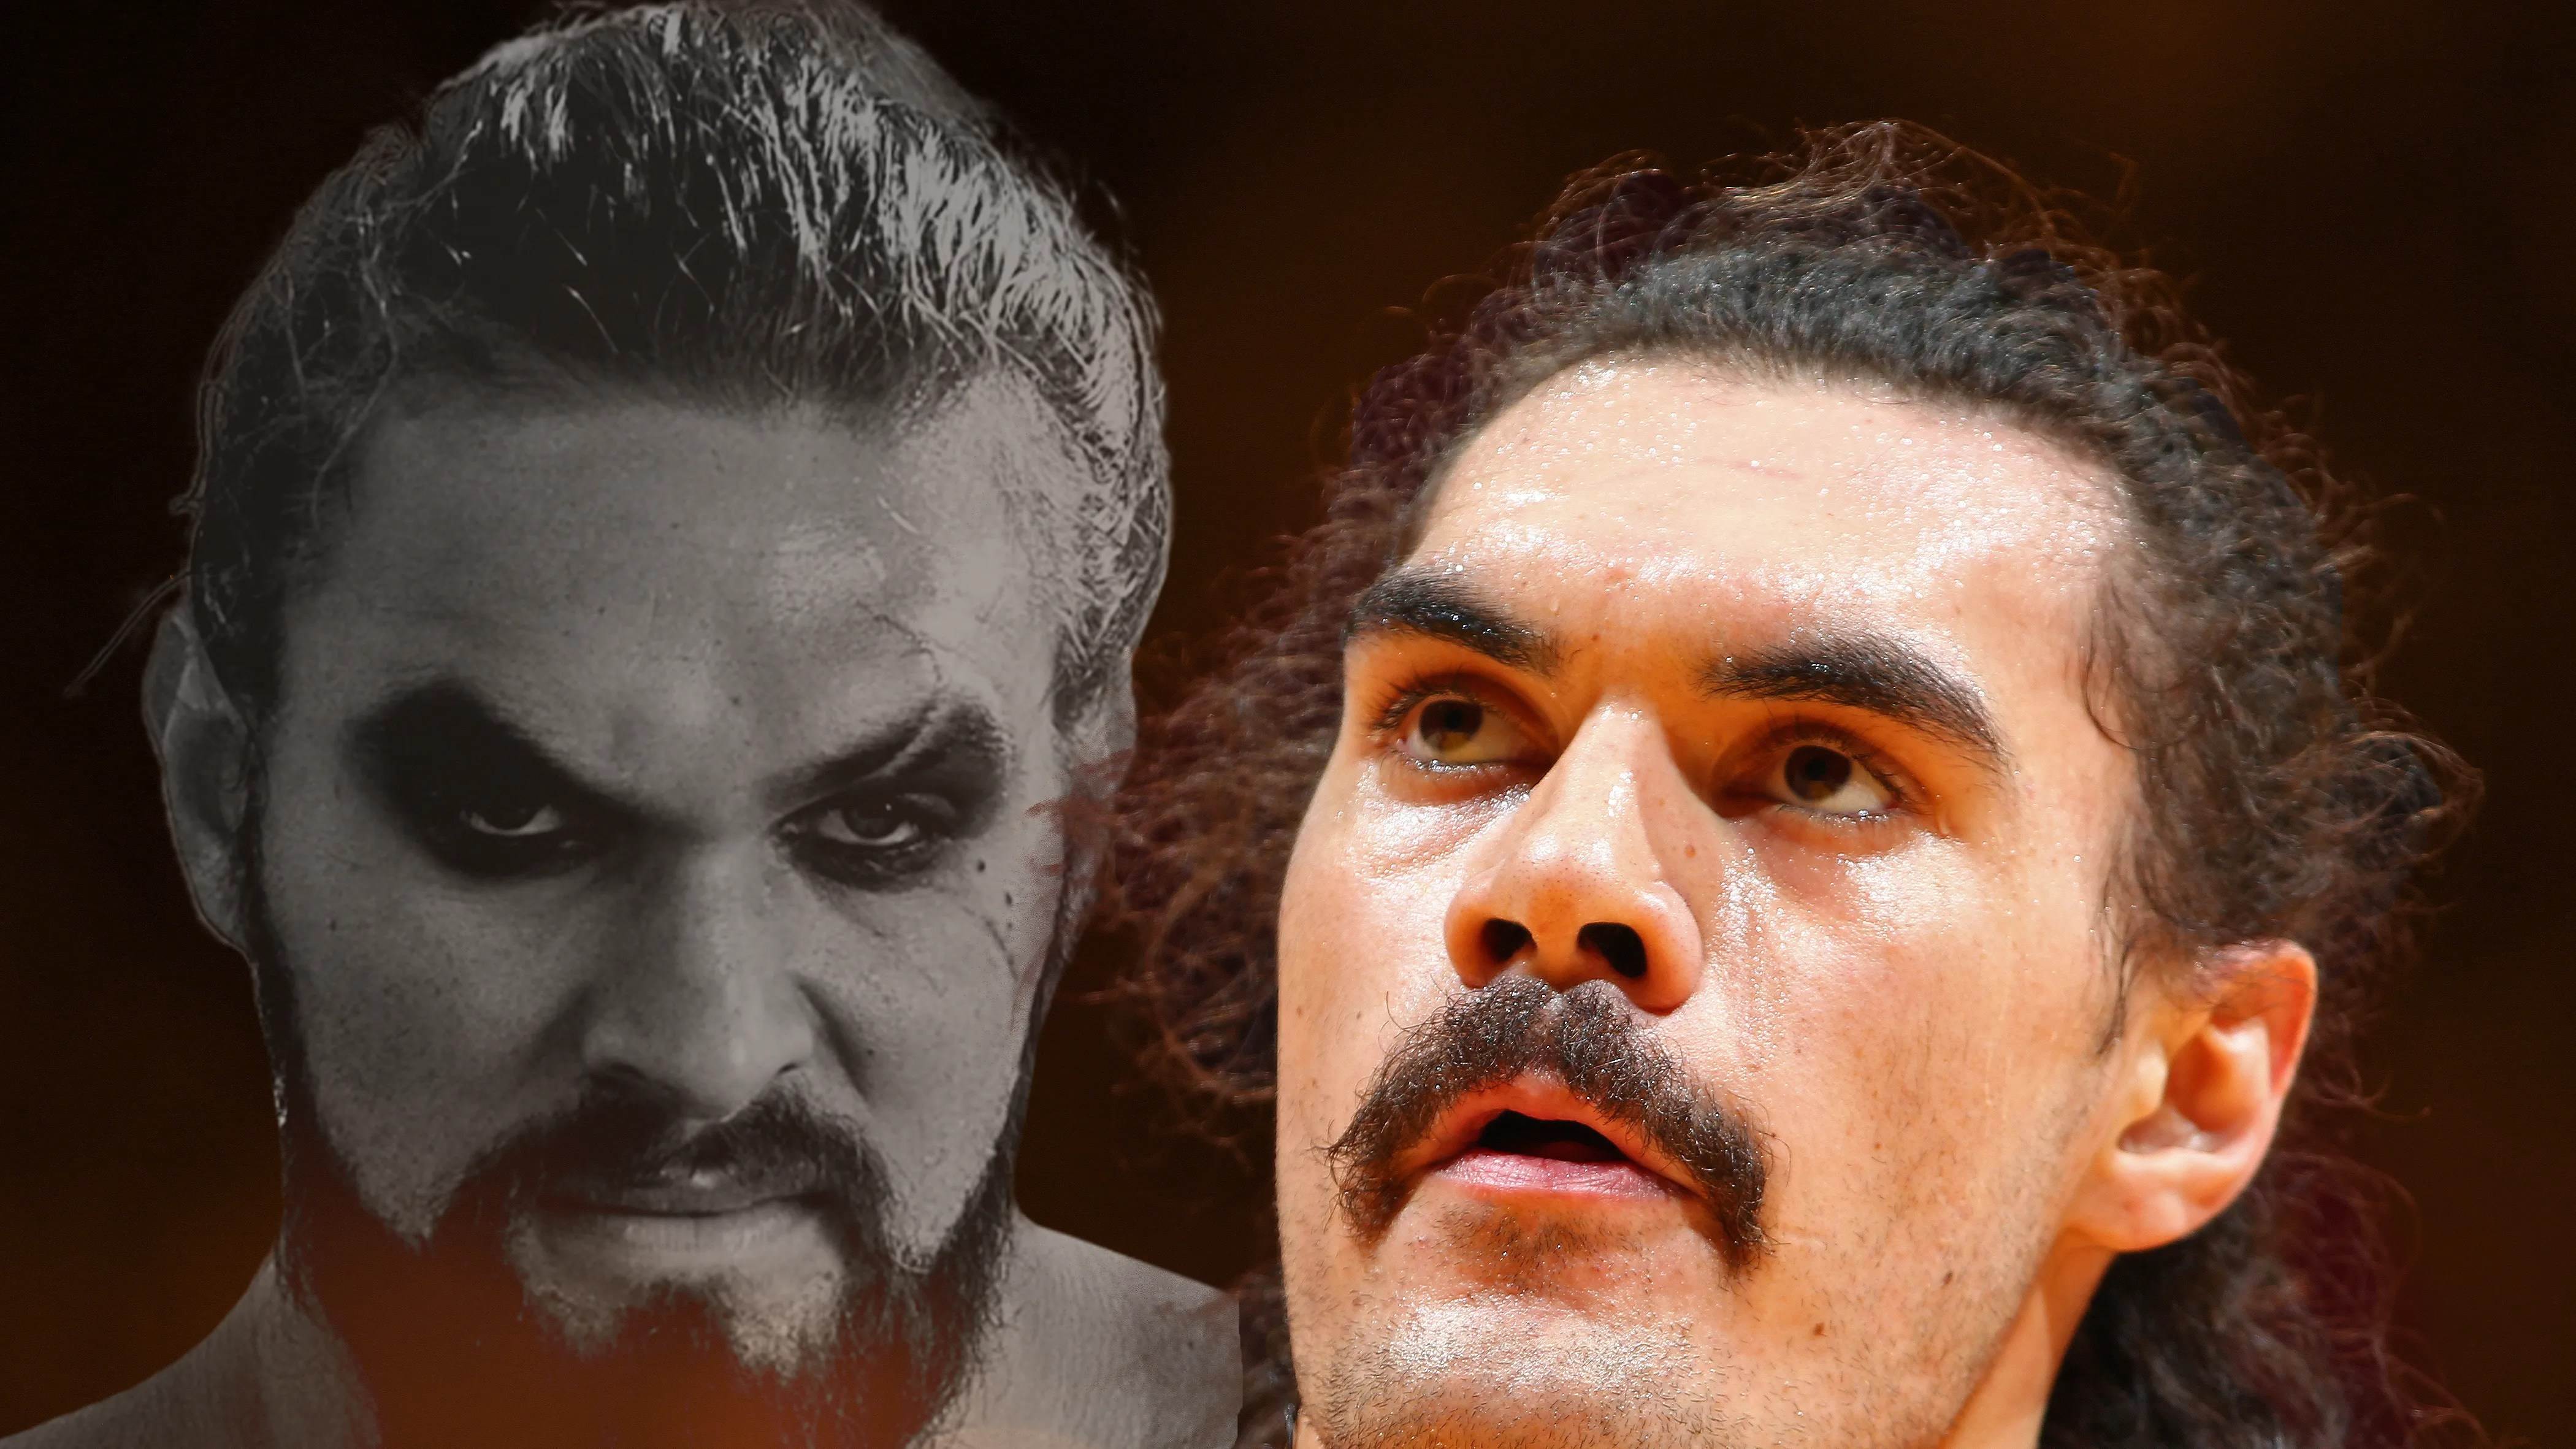 We Asked The NBAs Khal Drogo Lookalike How He Got Such